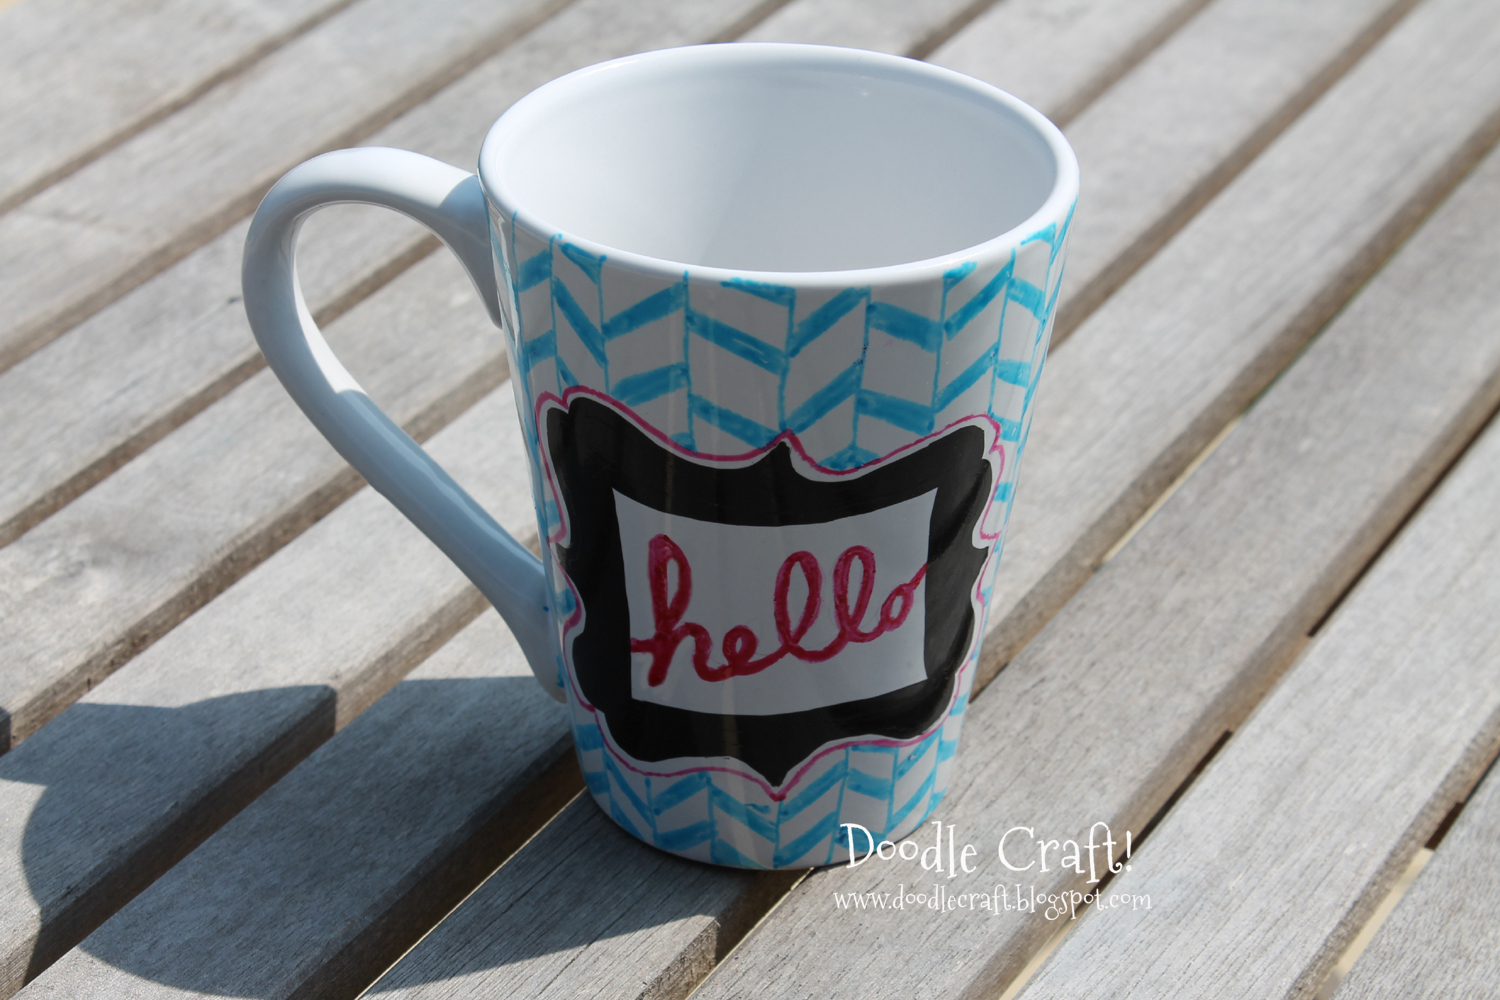 Doodlecraft customize your mug with glass paint markers for Craft smart paint pen on mugs